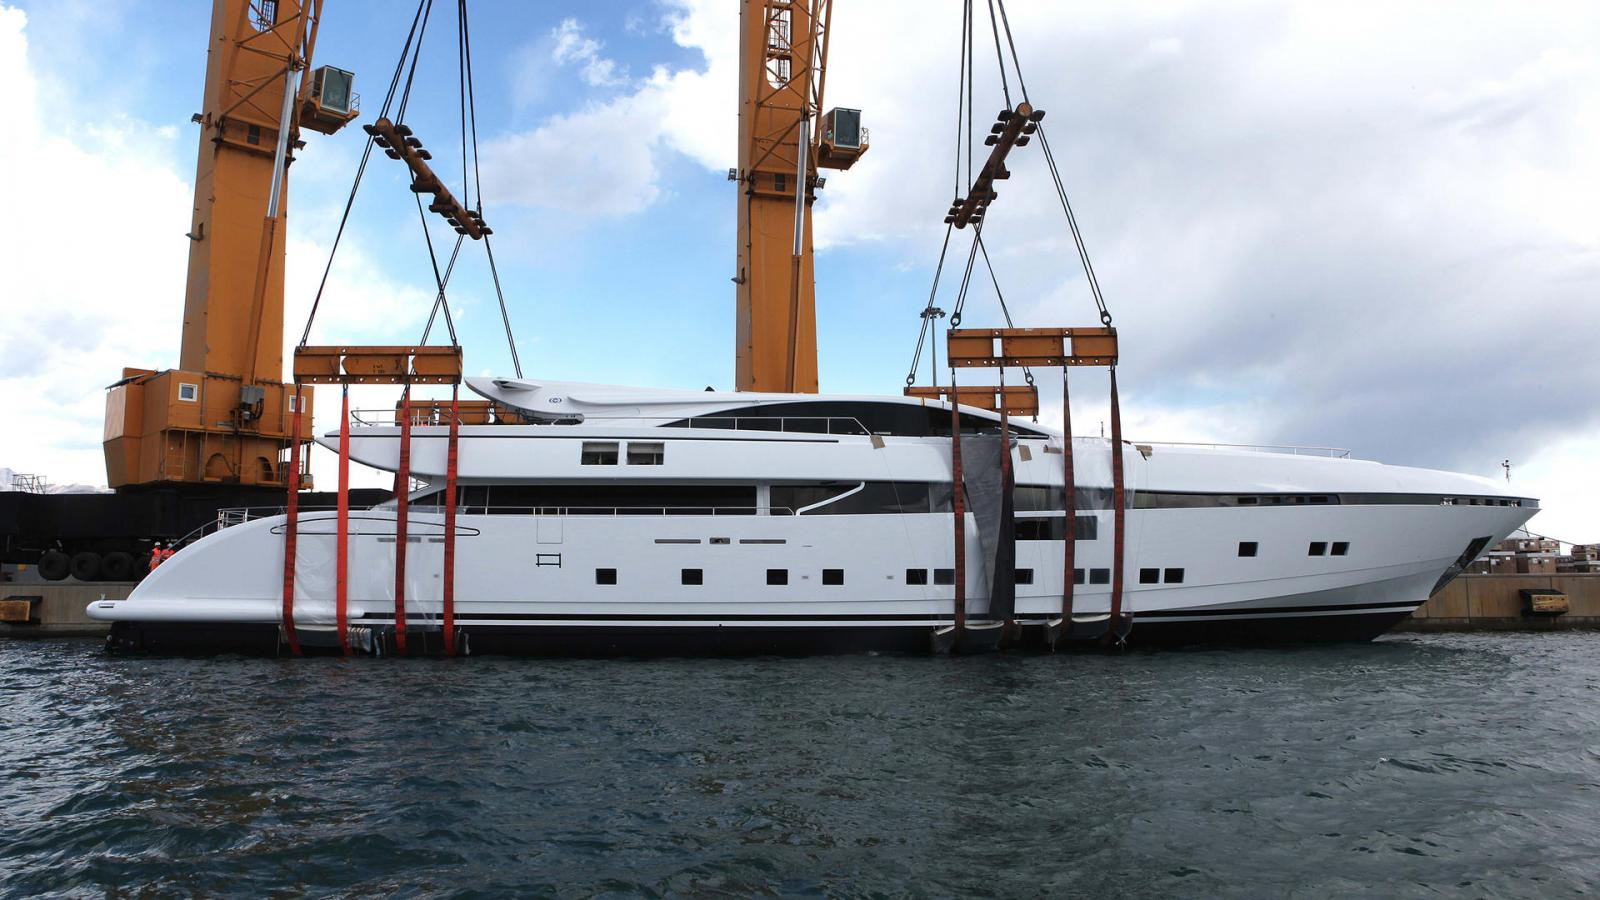 12. CCN launches ELSEA, first fully custom made 50m yacht in aluminum